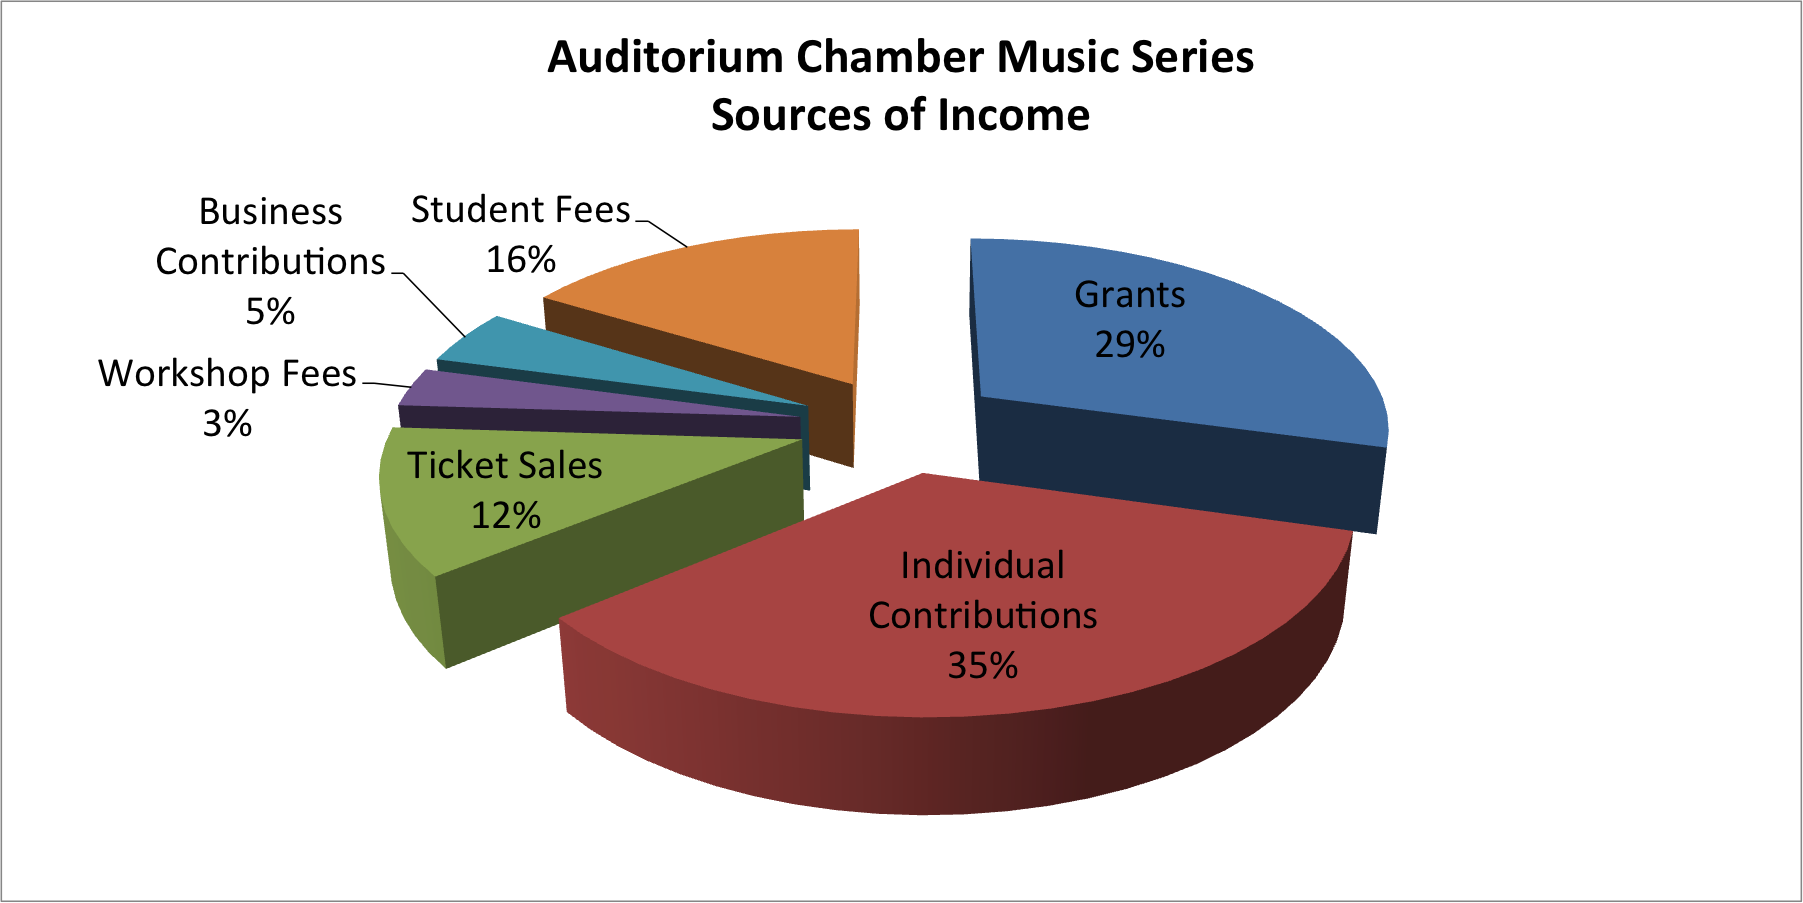 A graph of ACMS's sources of income, showing 29 percent from grants, 35 percent from individual contributions, 12 percent from ticket sales, 3 percent from workshop fees, 5 percent from business contributions and 16 percent from student fees.